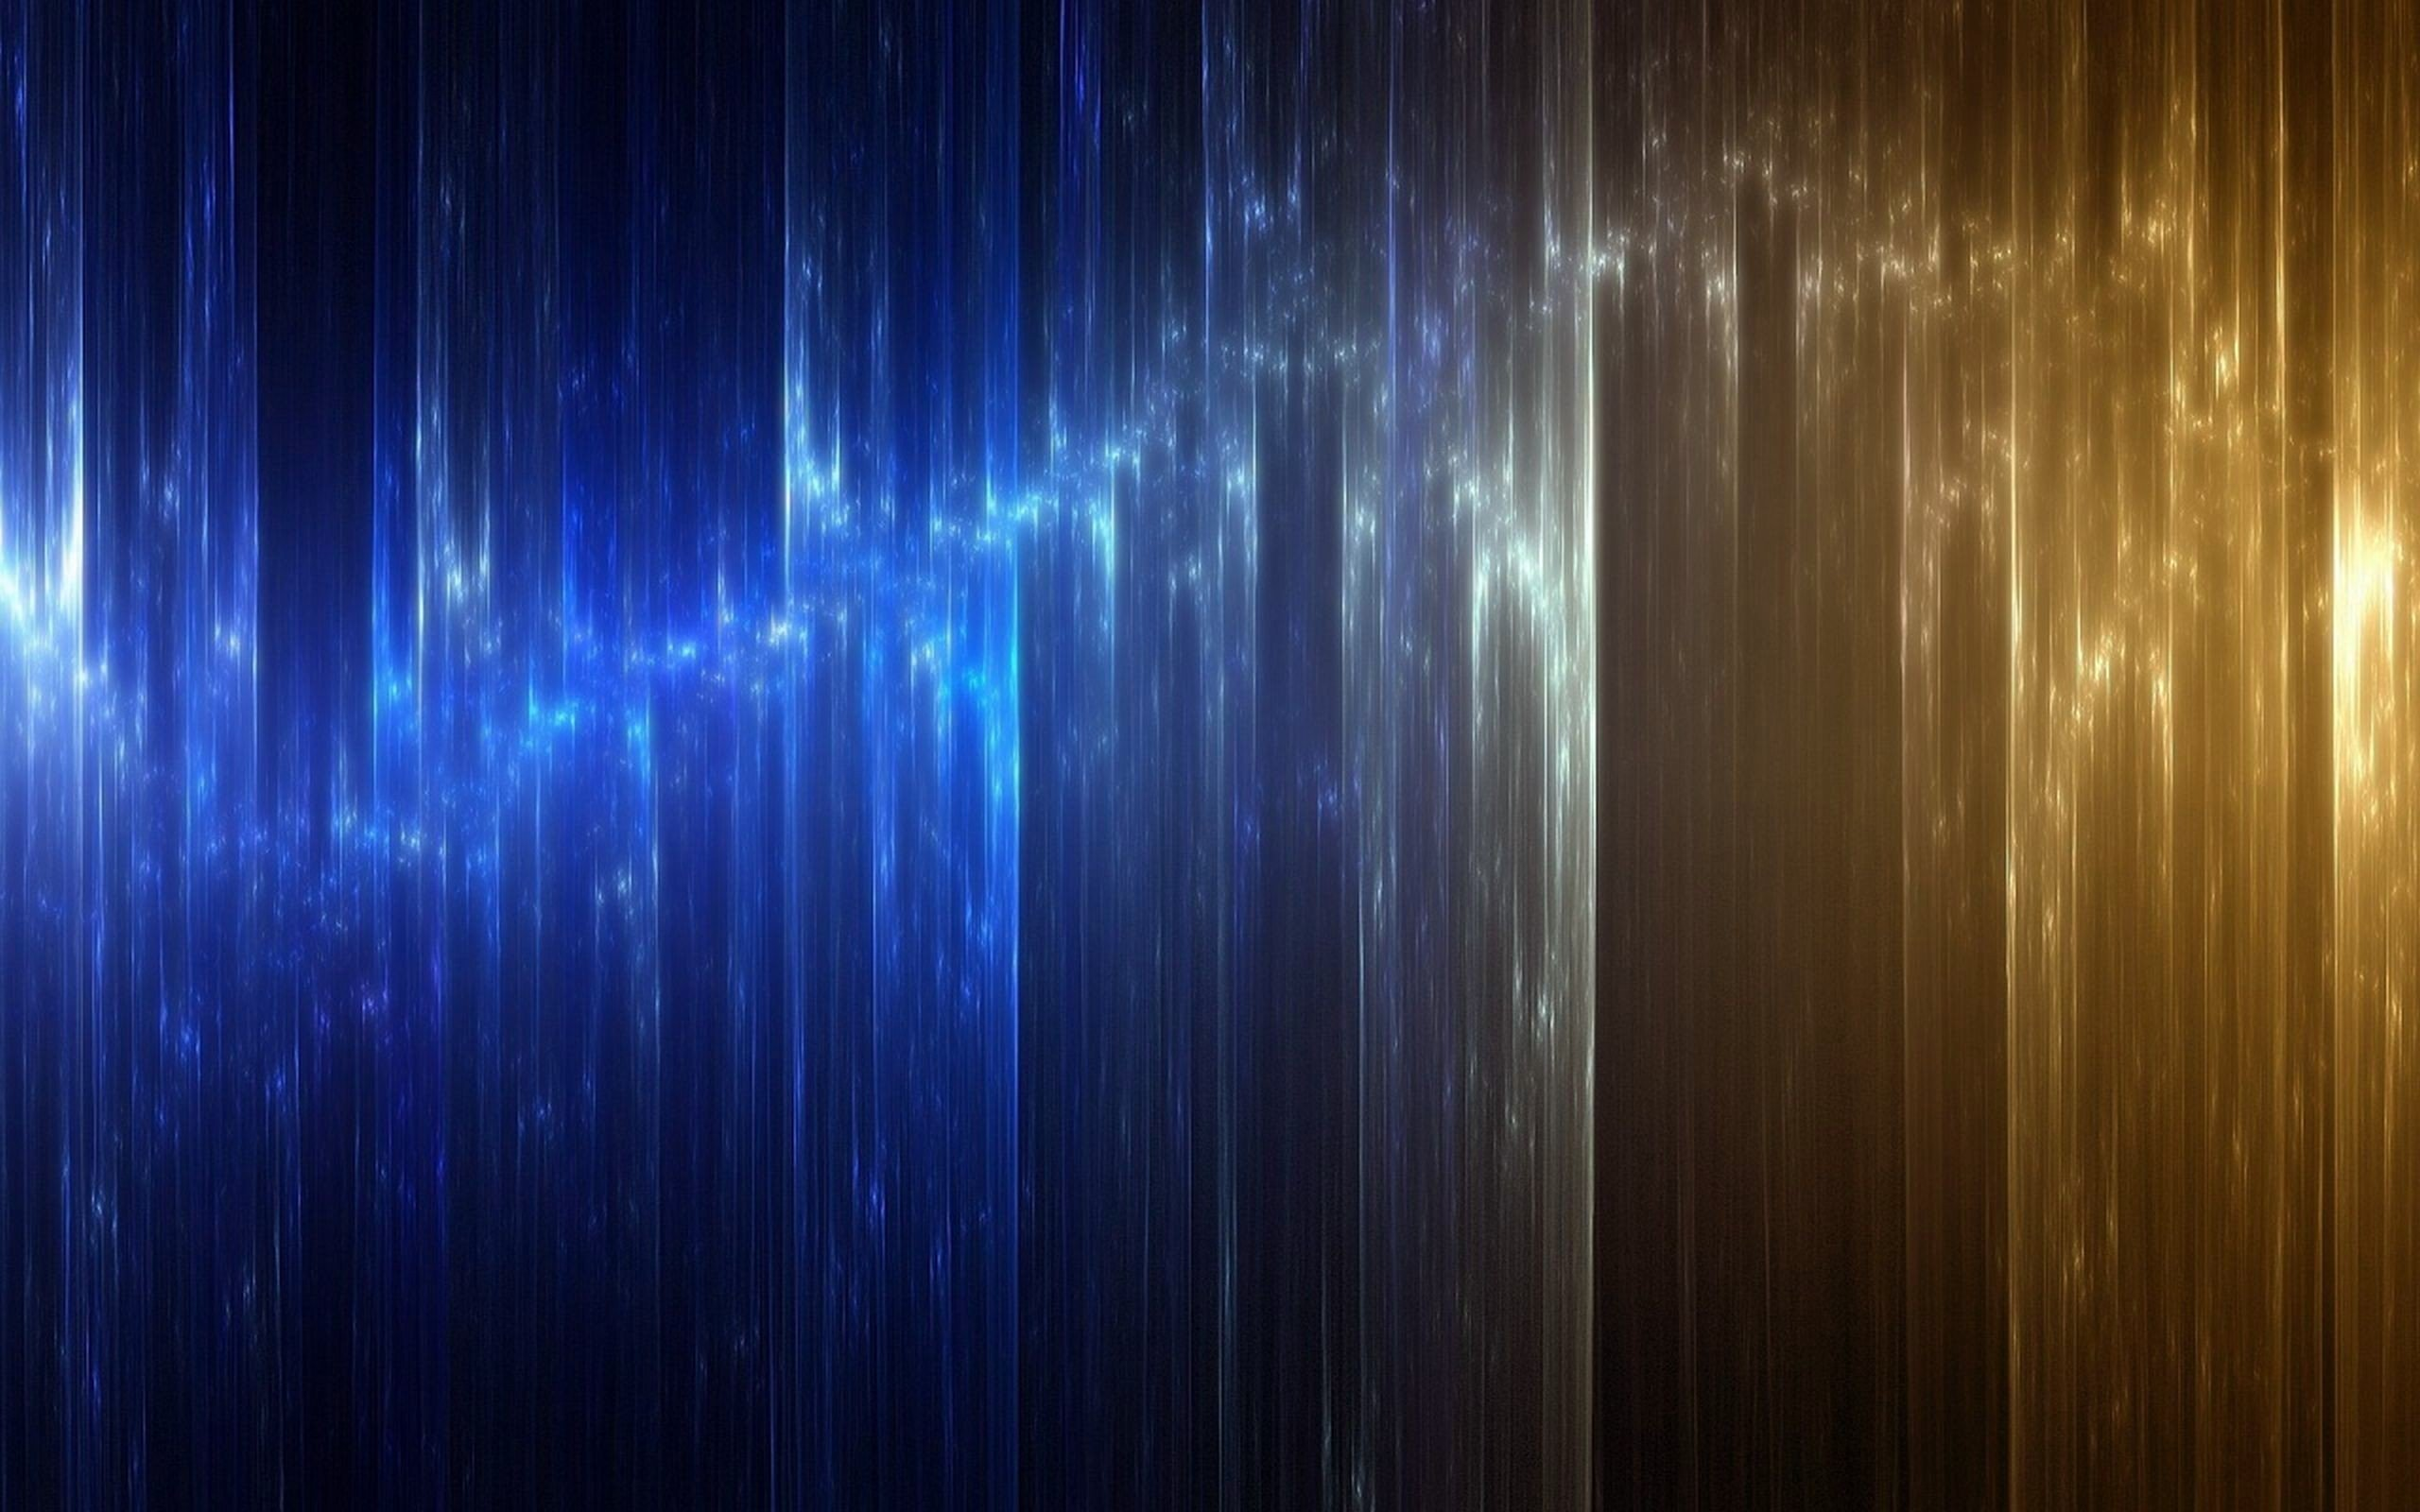 Light abstract blue gold wallpaper 2560x1600 14249 WallpaperUP 2560x1600